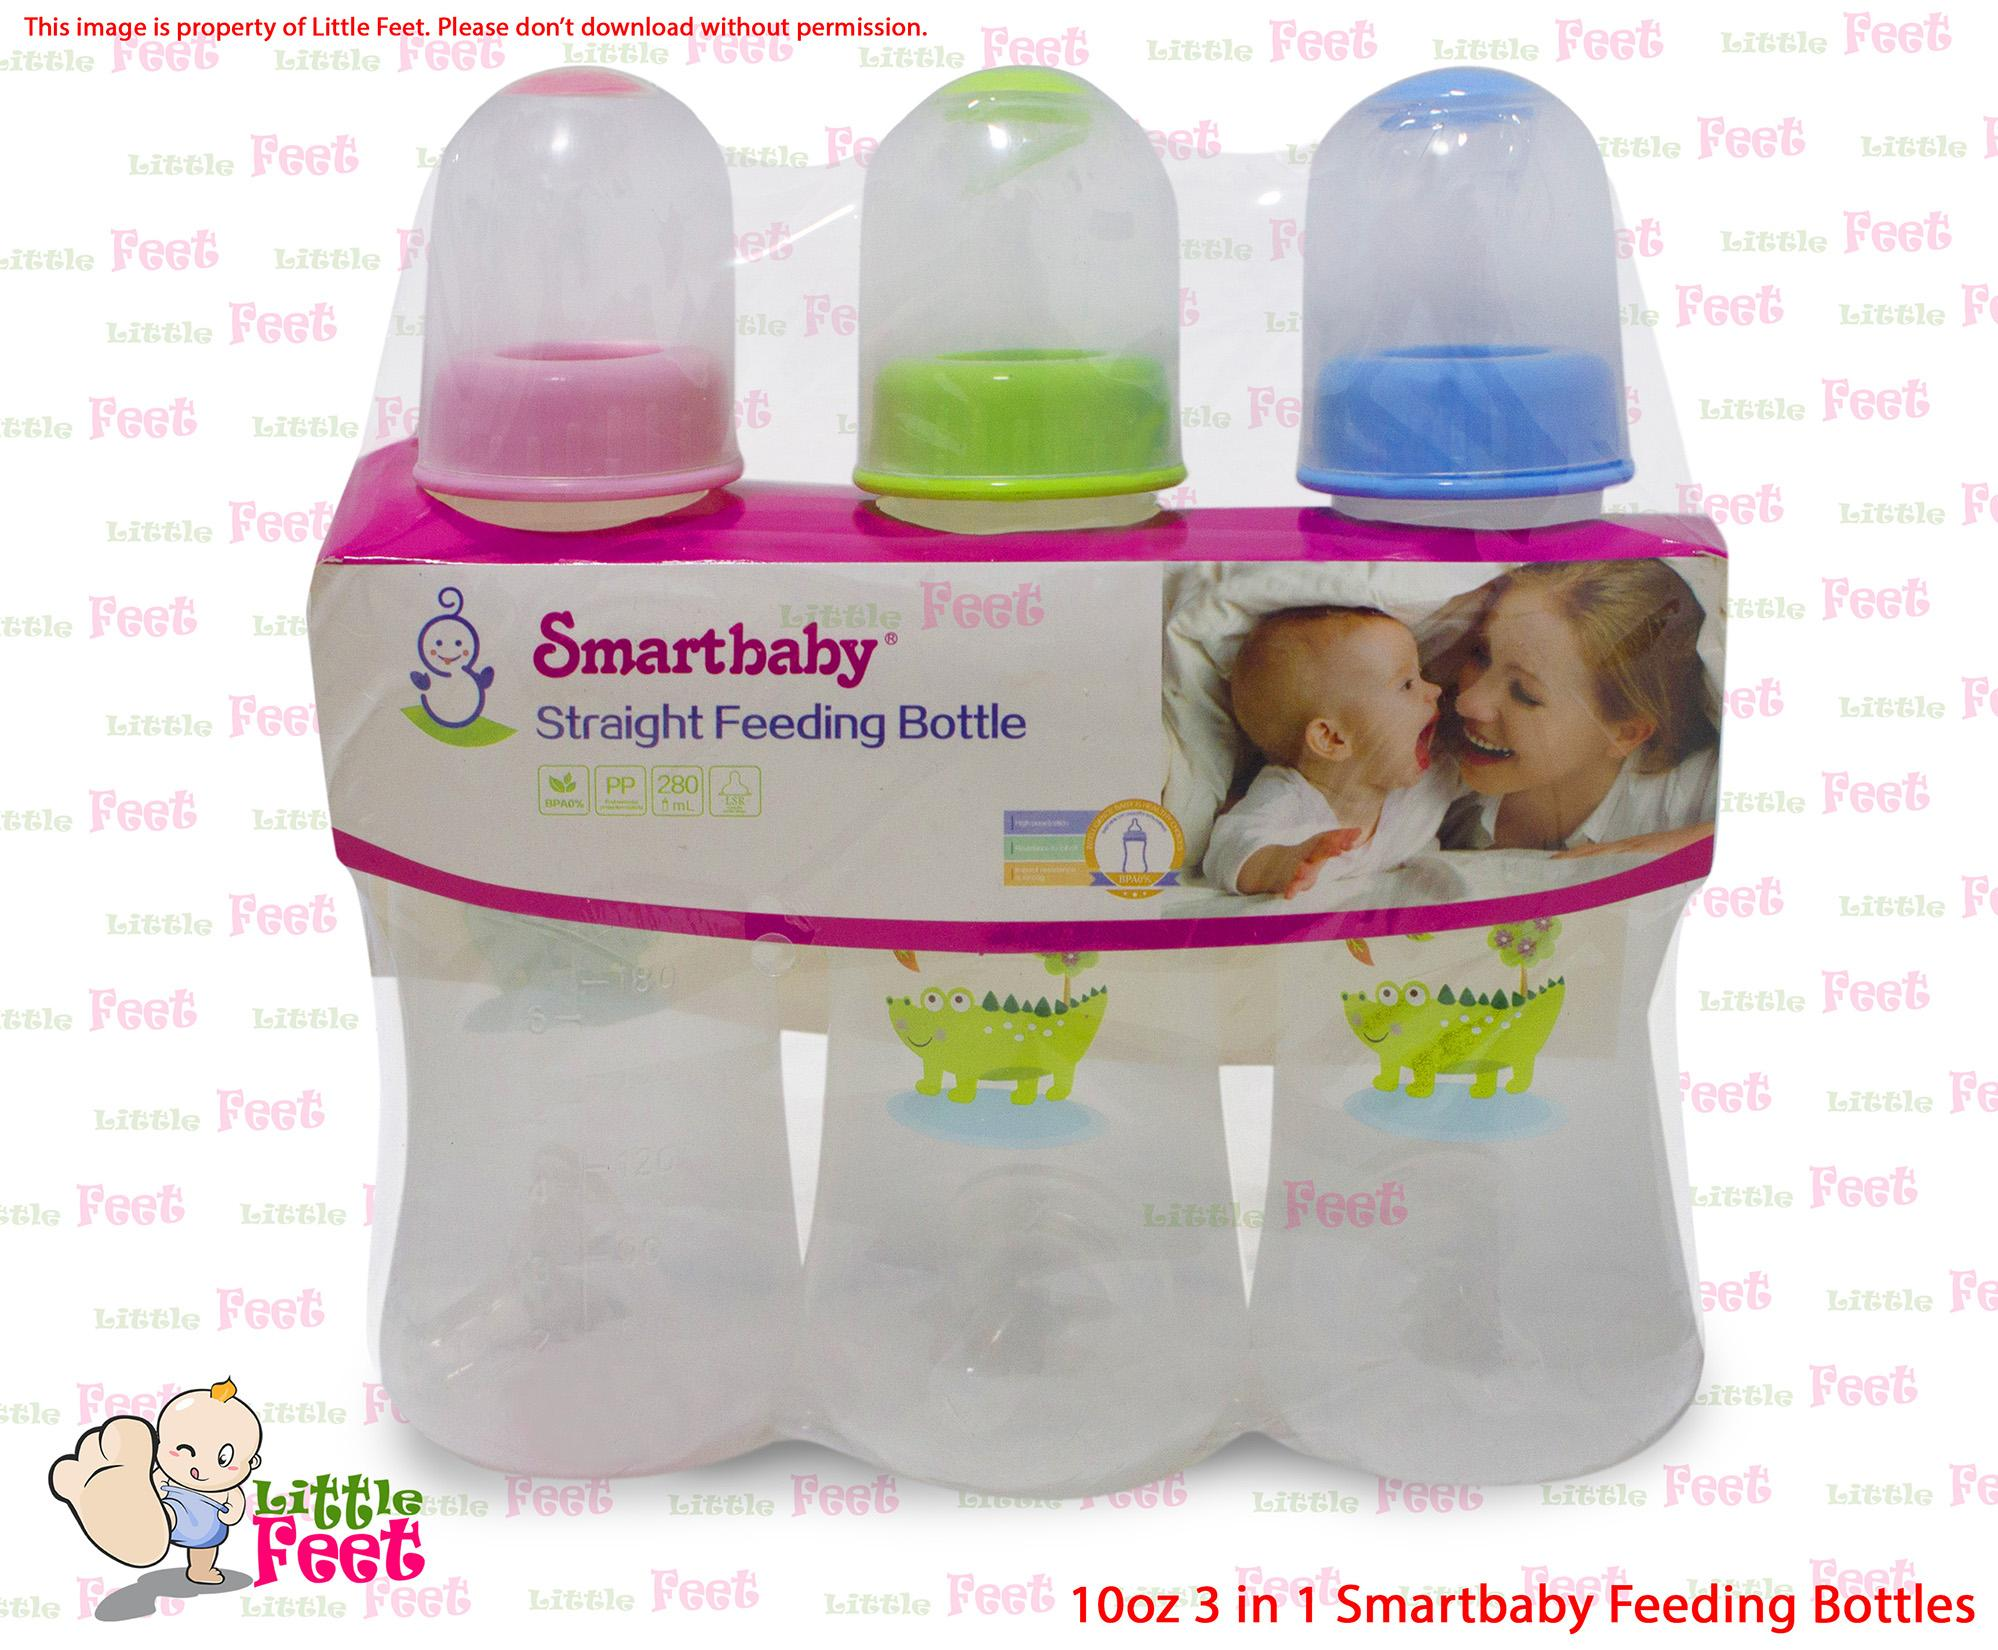 3 In 1 10oz Smartbaby Feeding Bottles By Zesapa Ent..